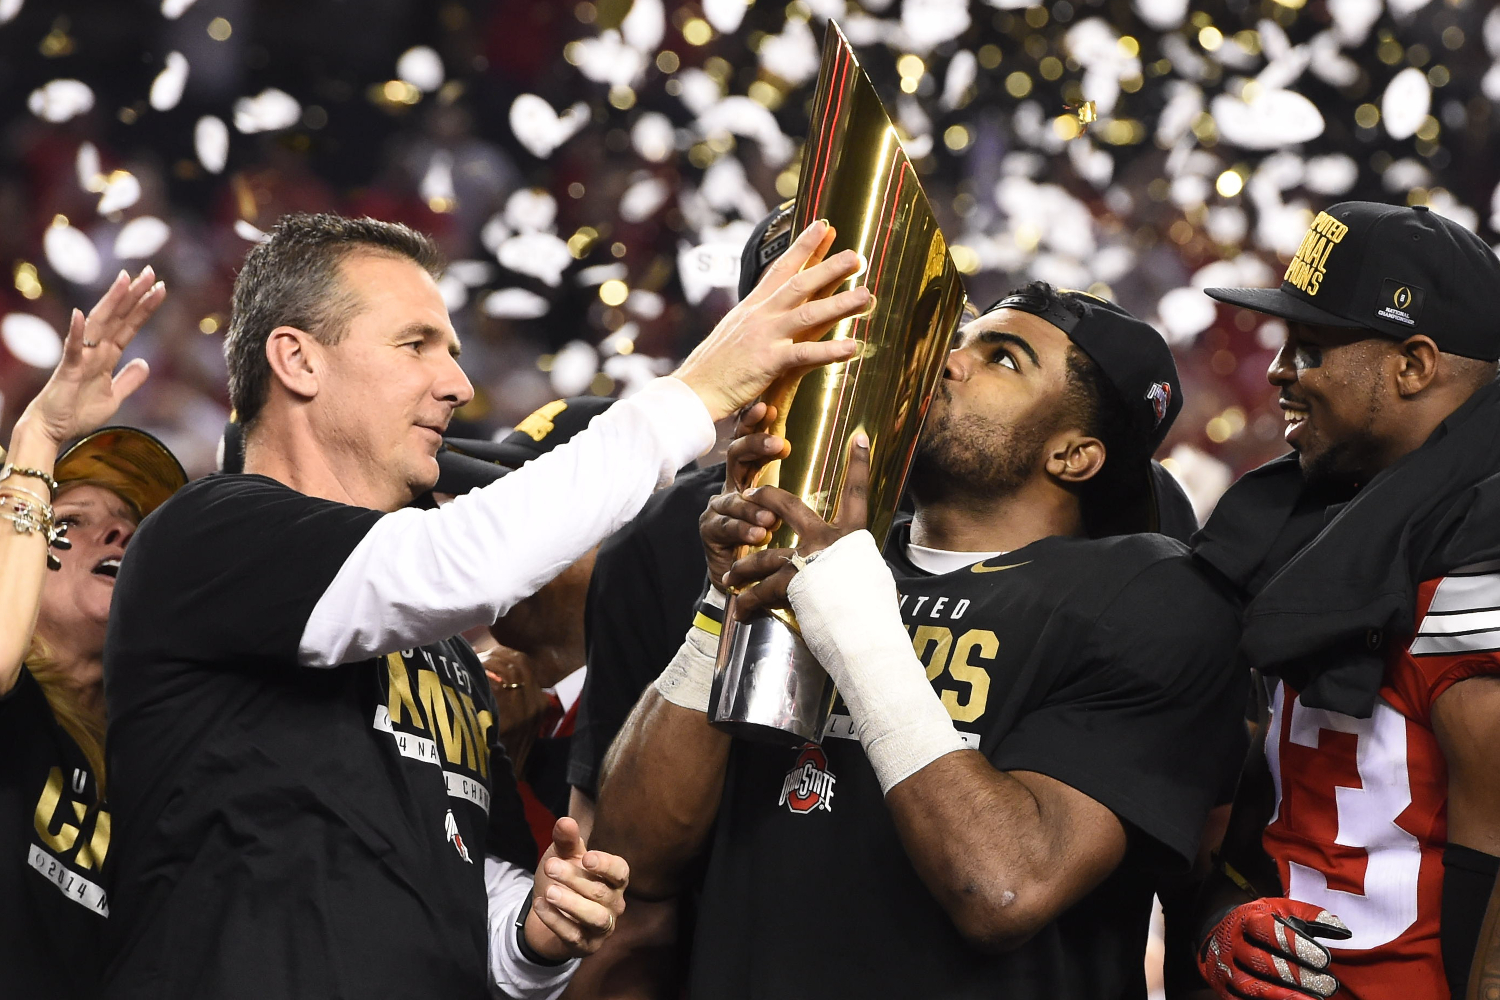 The Ohio State Buckeyes are one of the top college football programs in the country. So, how many national championships have they won?